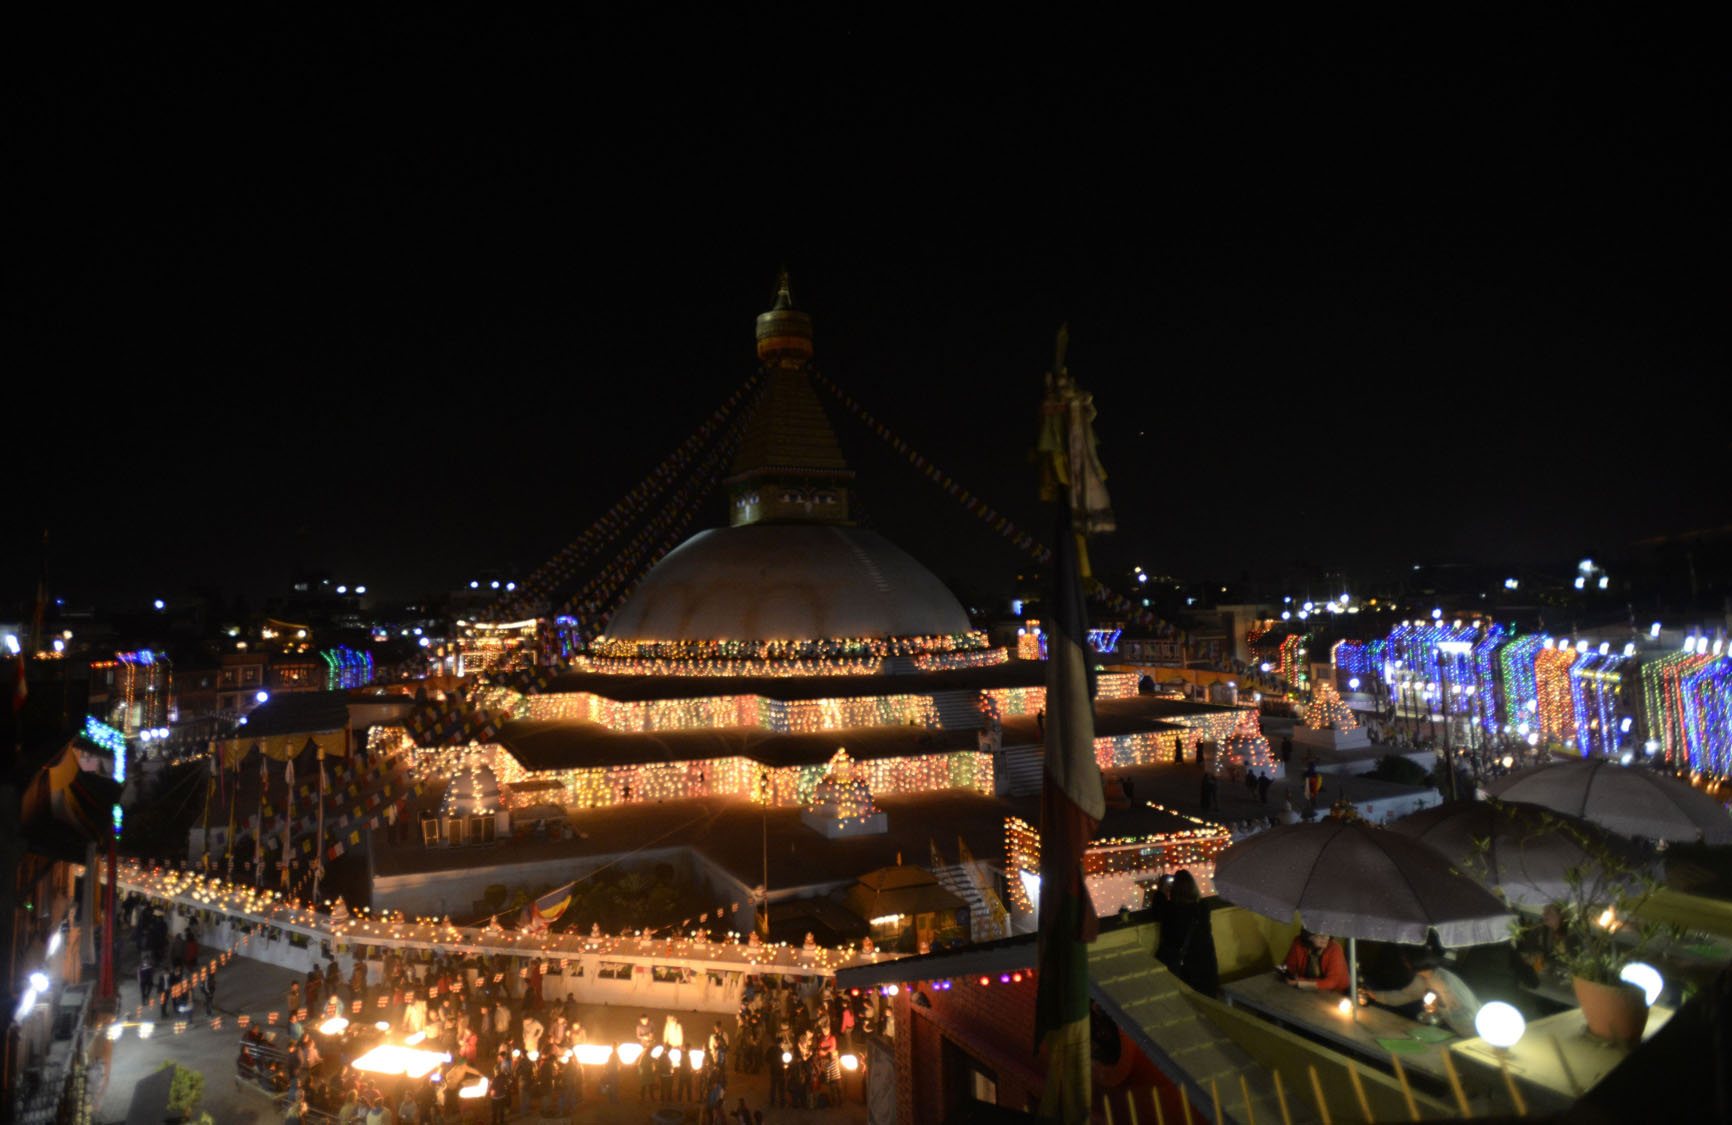 Boudhanath Stupa reopens after April 2015 Nepal earthquake